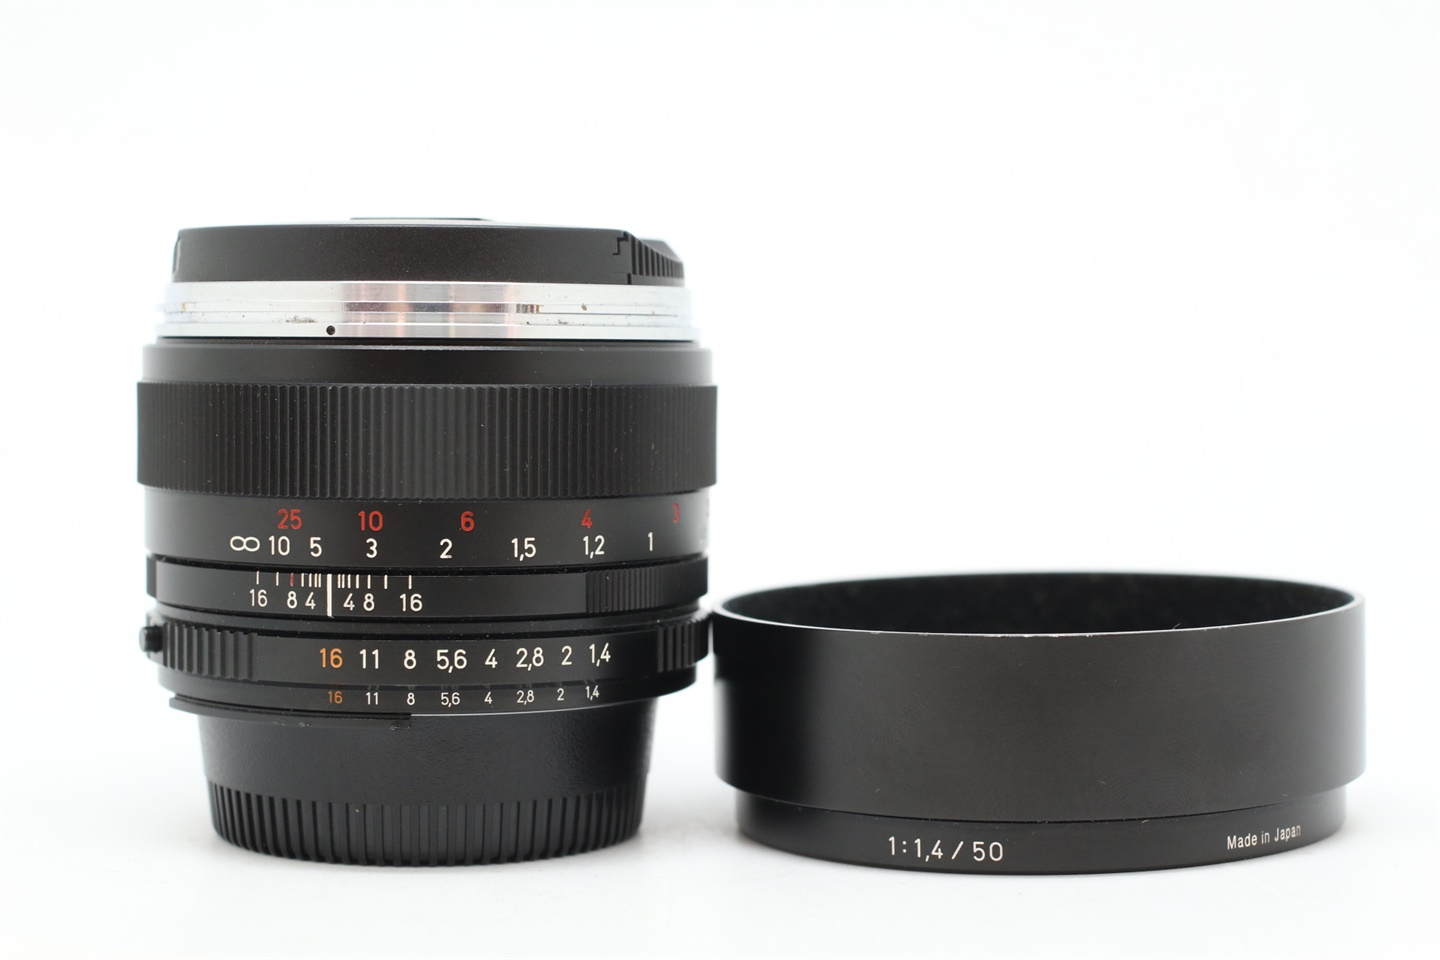 [USED-PUDU] ZEISS 50MM F1.4 Planar T* ZF.2 (NIKON MOUNT) 90%LIKE NEW CONDITION SN:15881566